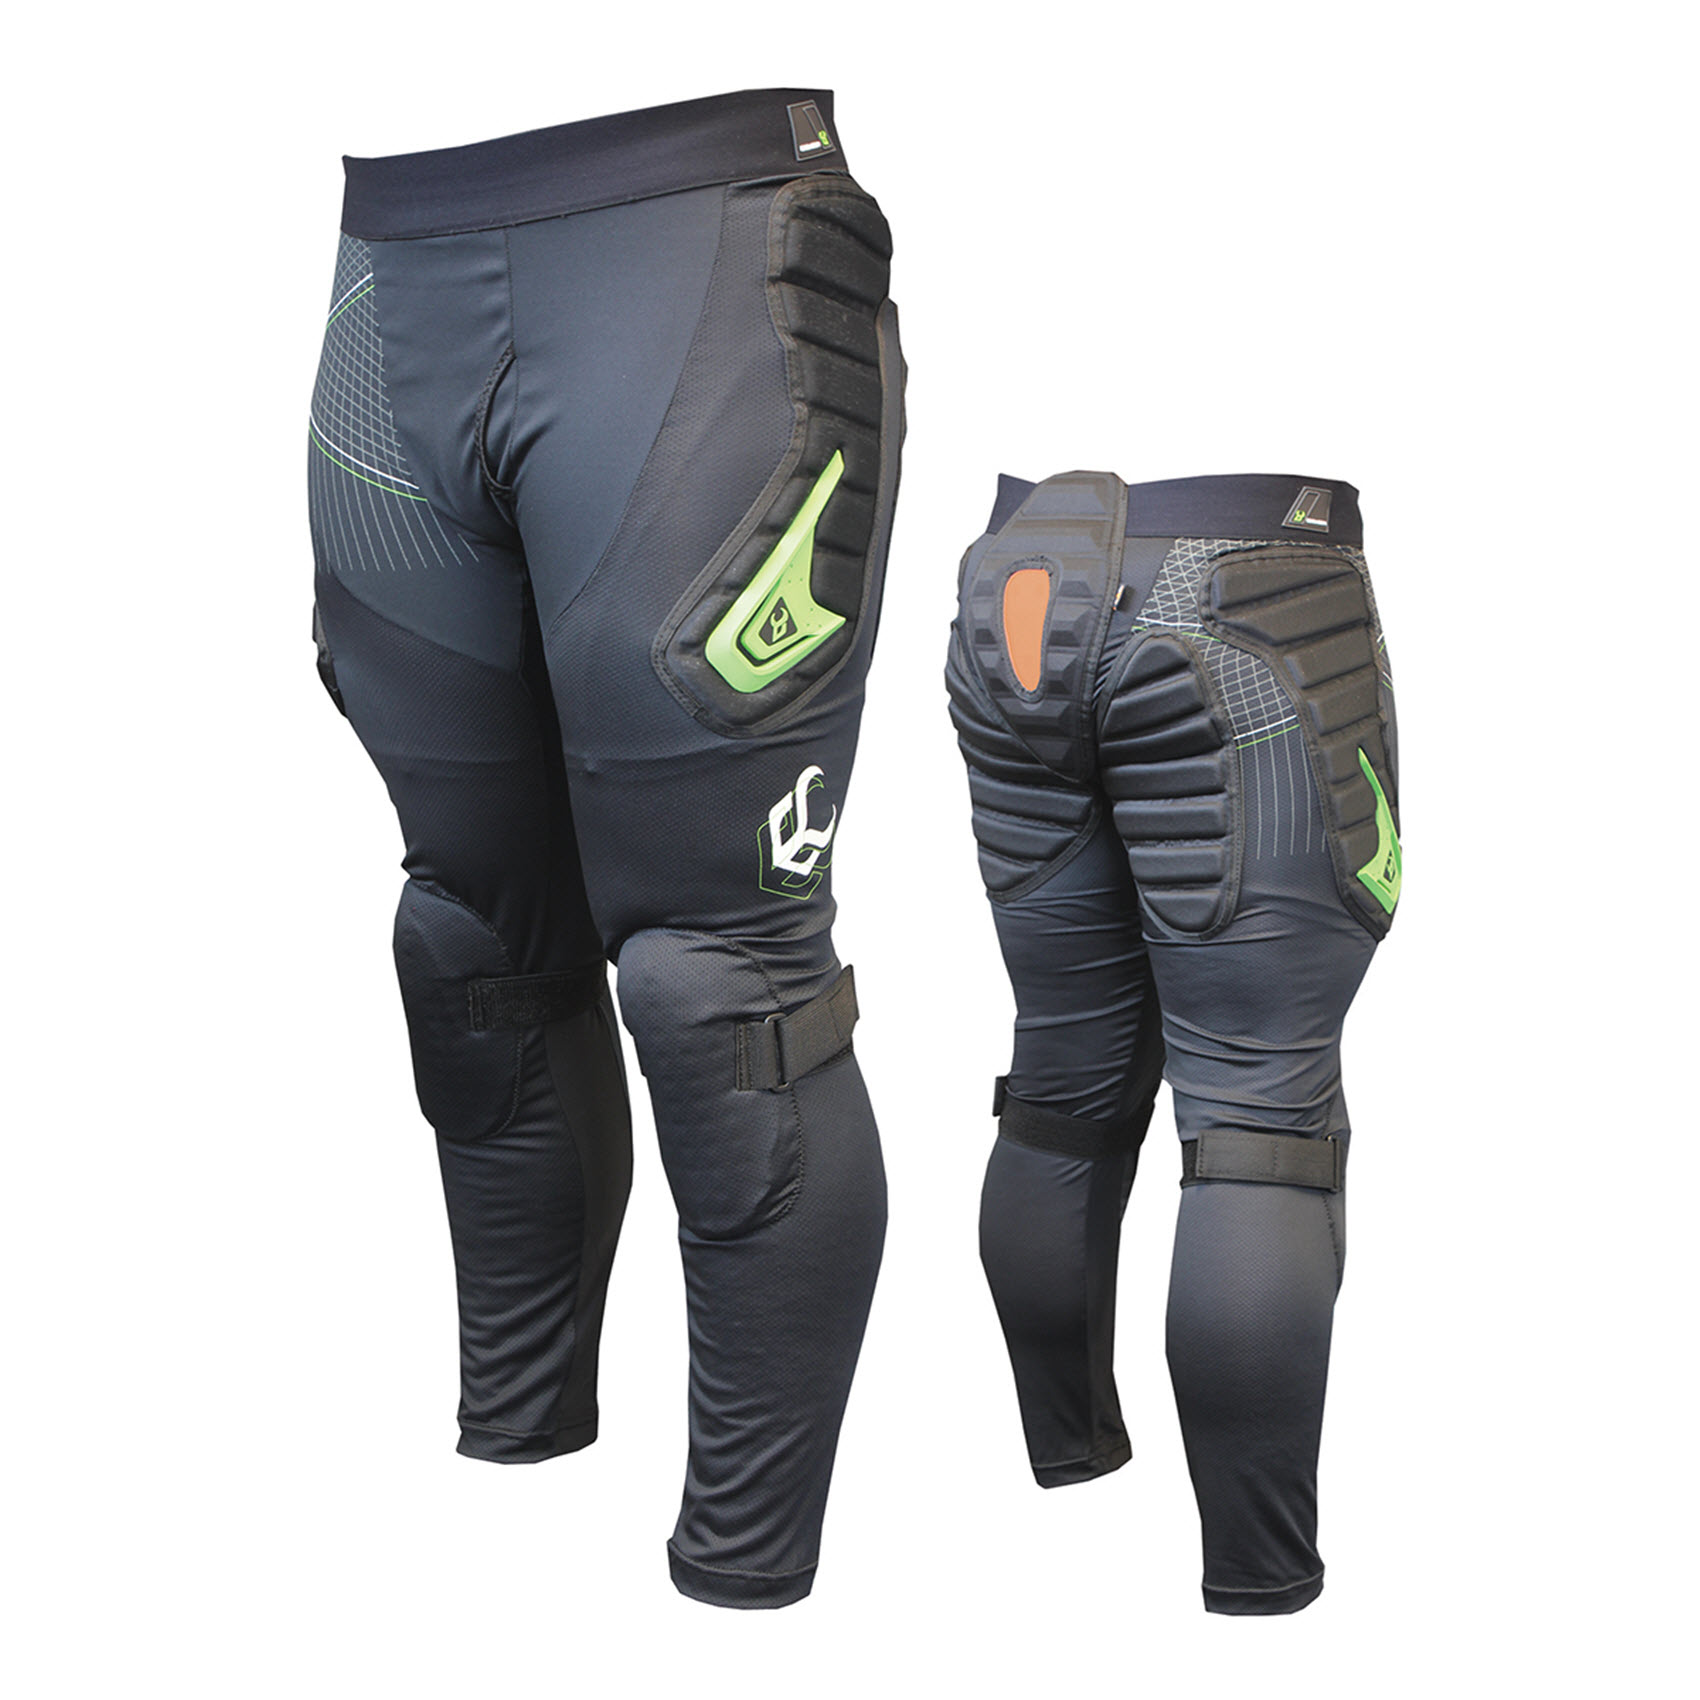 Demon Flexforce X Pants D30 Mens Snowboard Impact Shorts Long 2015